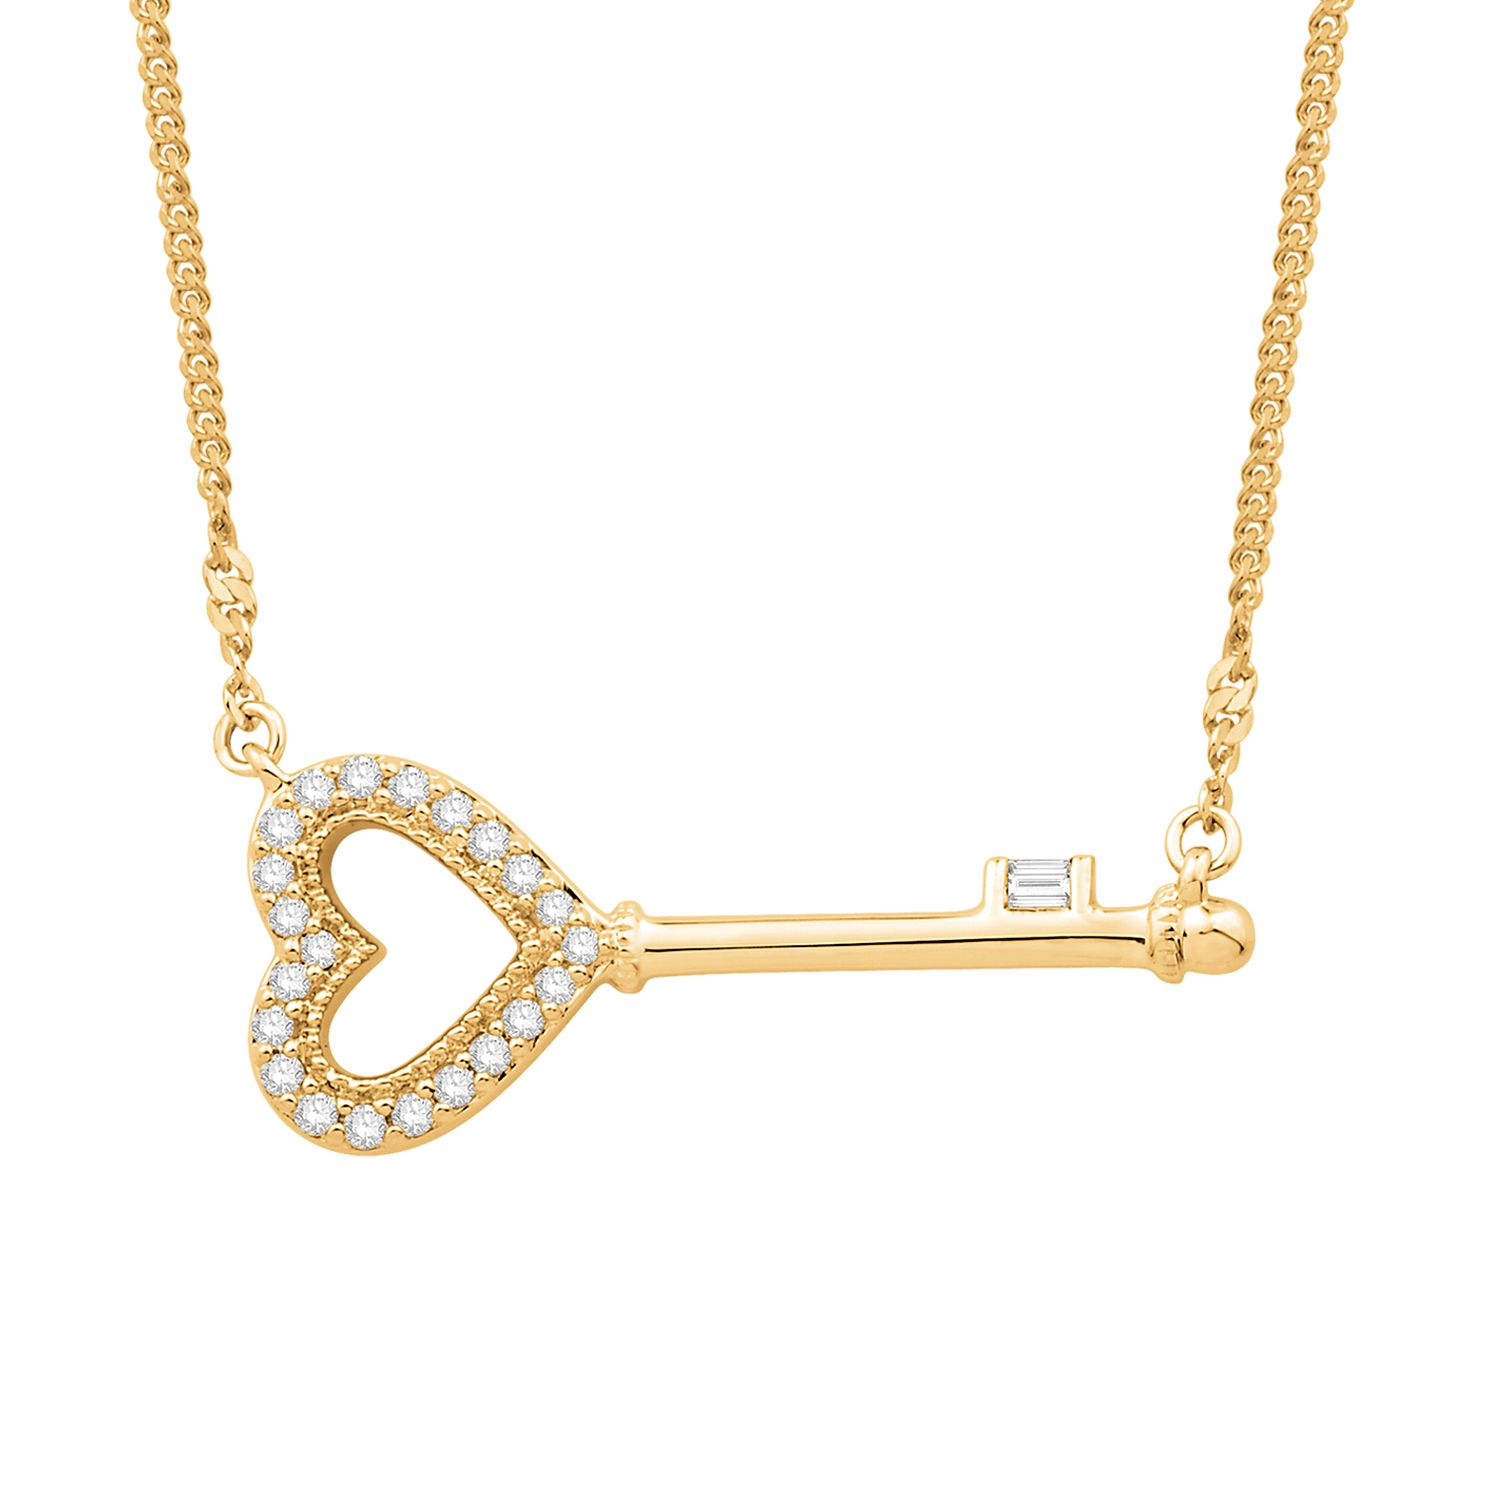 Emmy London 9ct Yellow Gold 0.10ct Heart Diamond Key Pendant - Product number 3329631